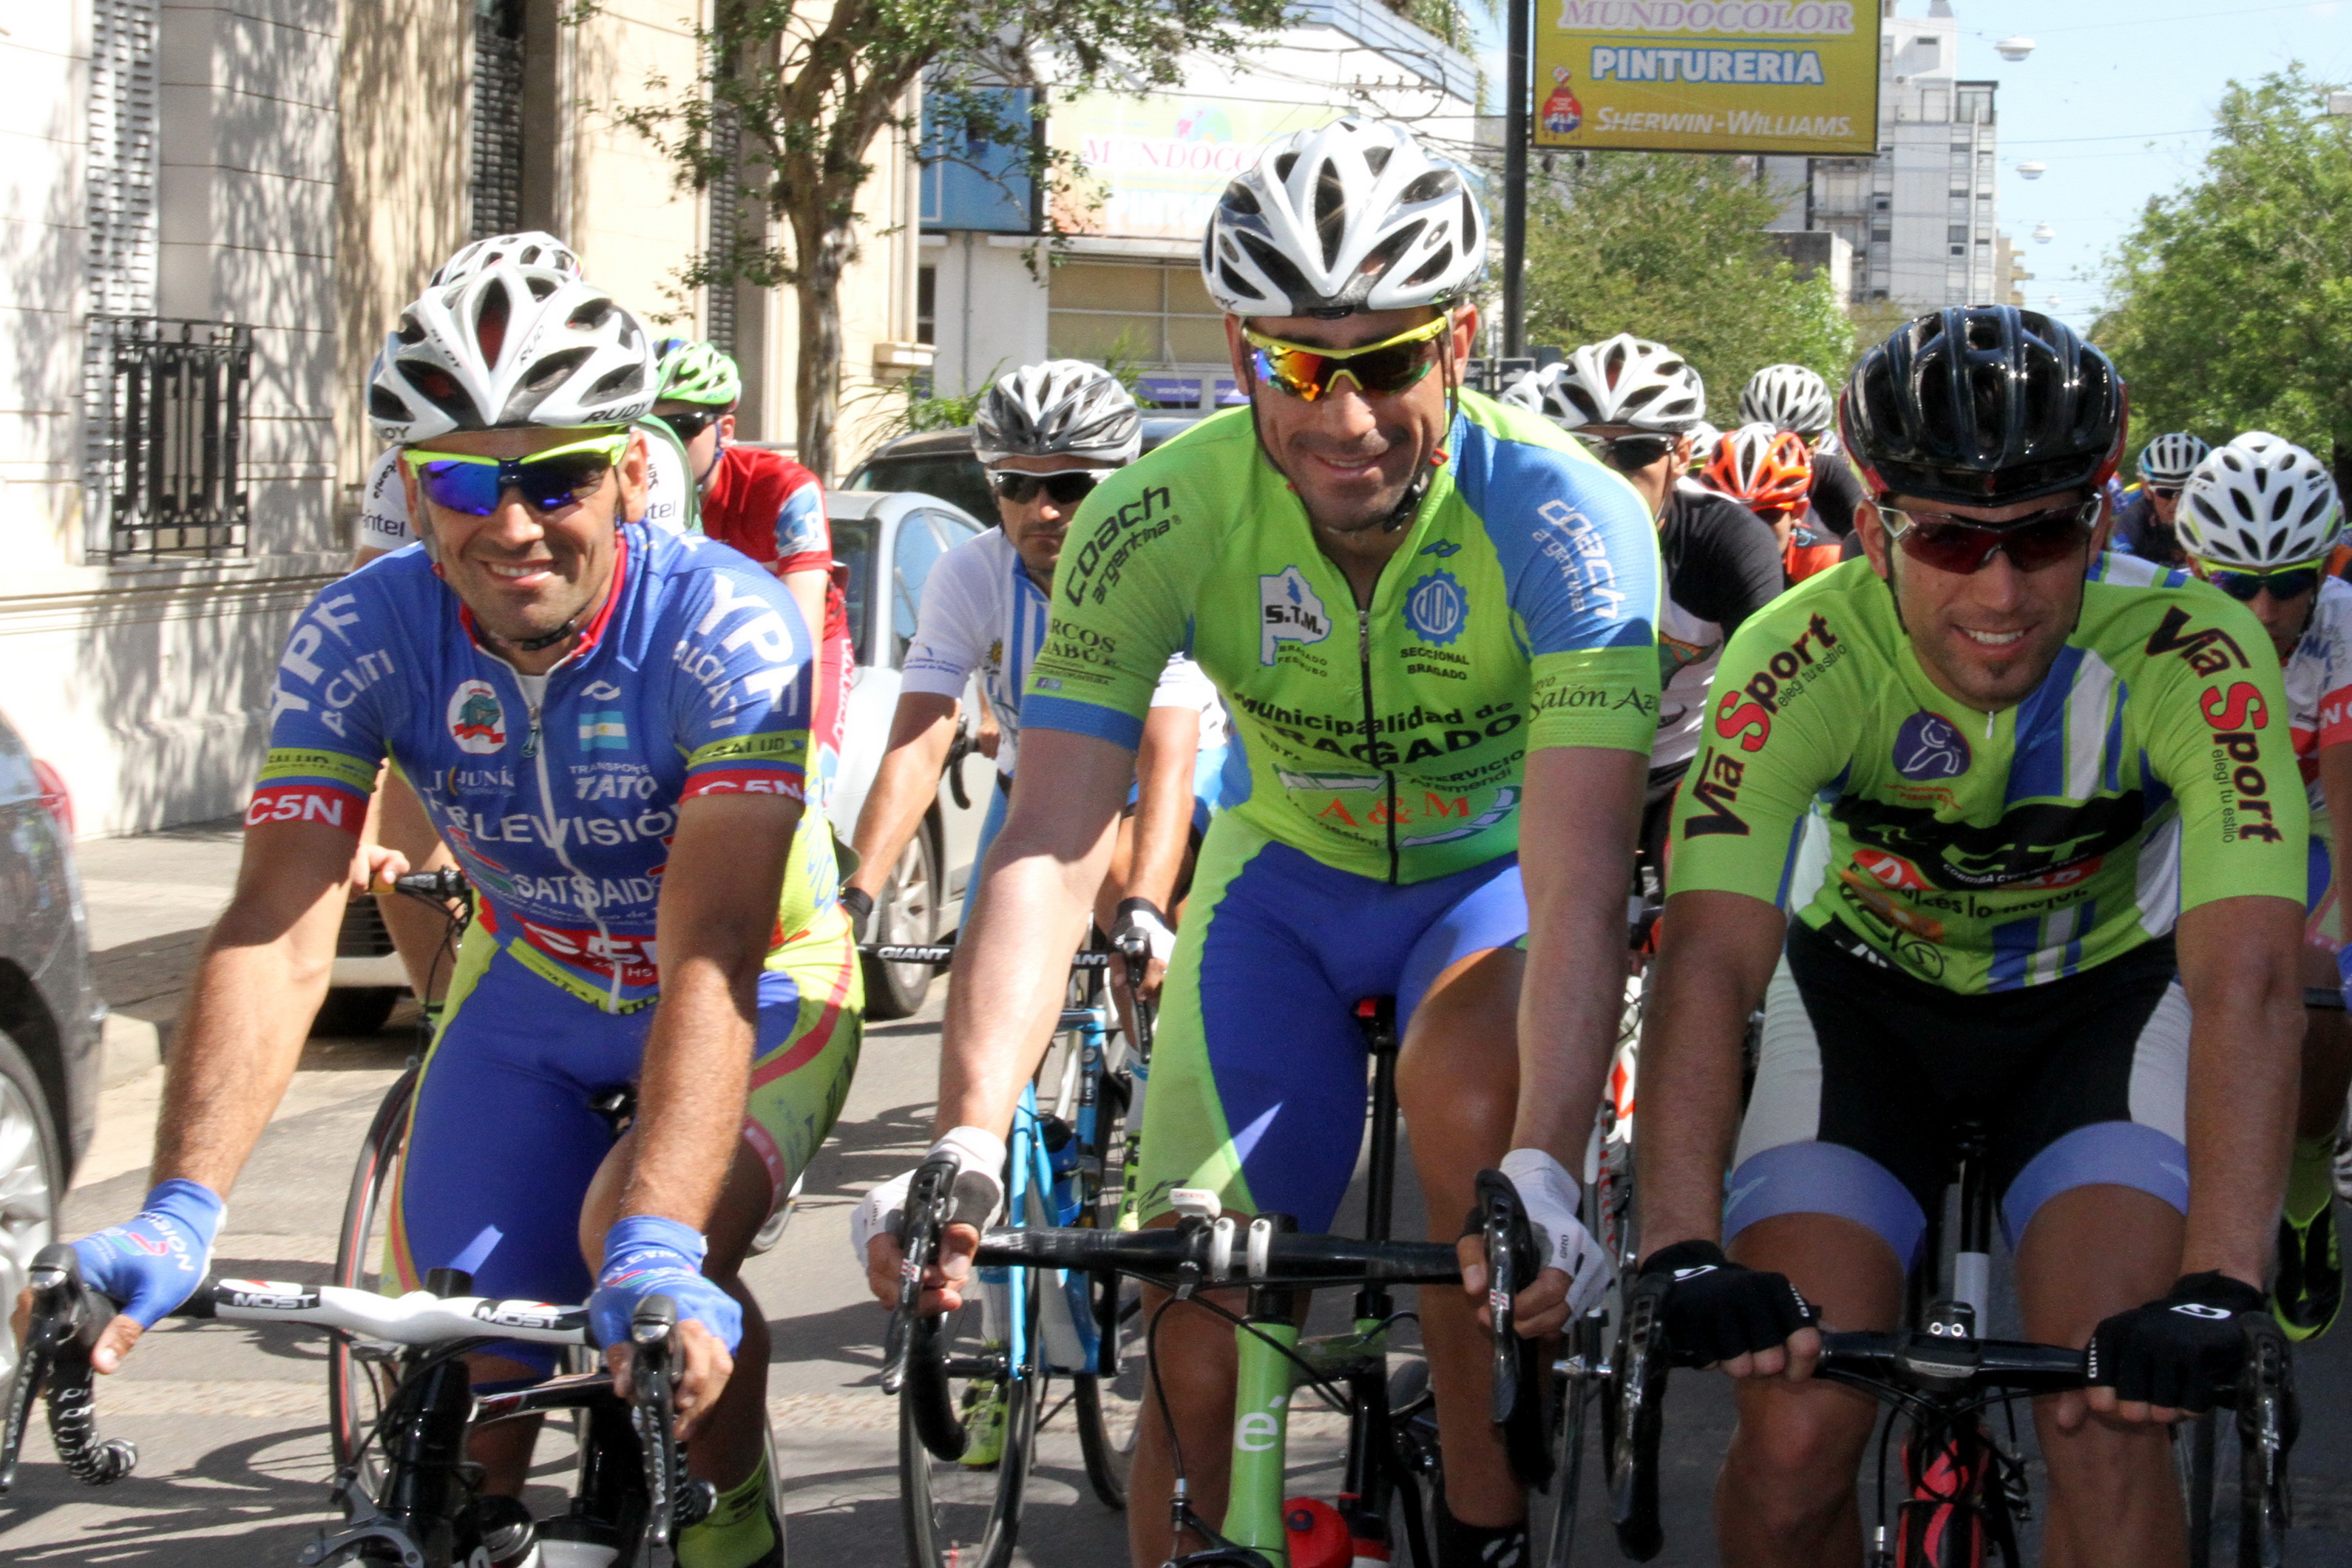 Los marplatenses presentes en el Giro por la Hermandad.